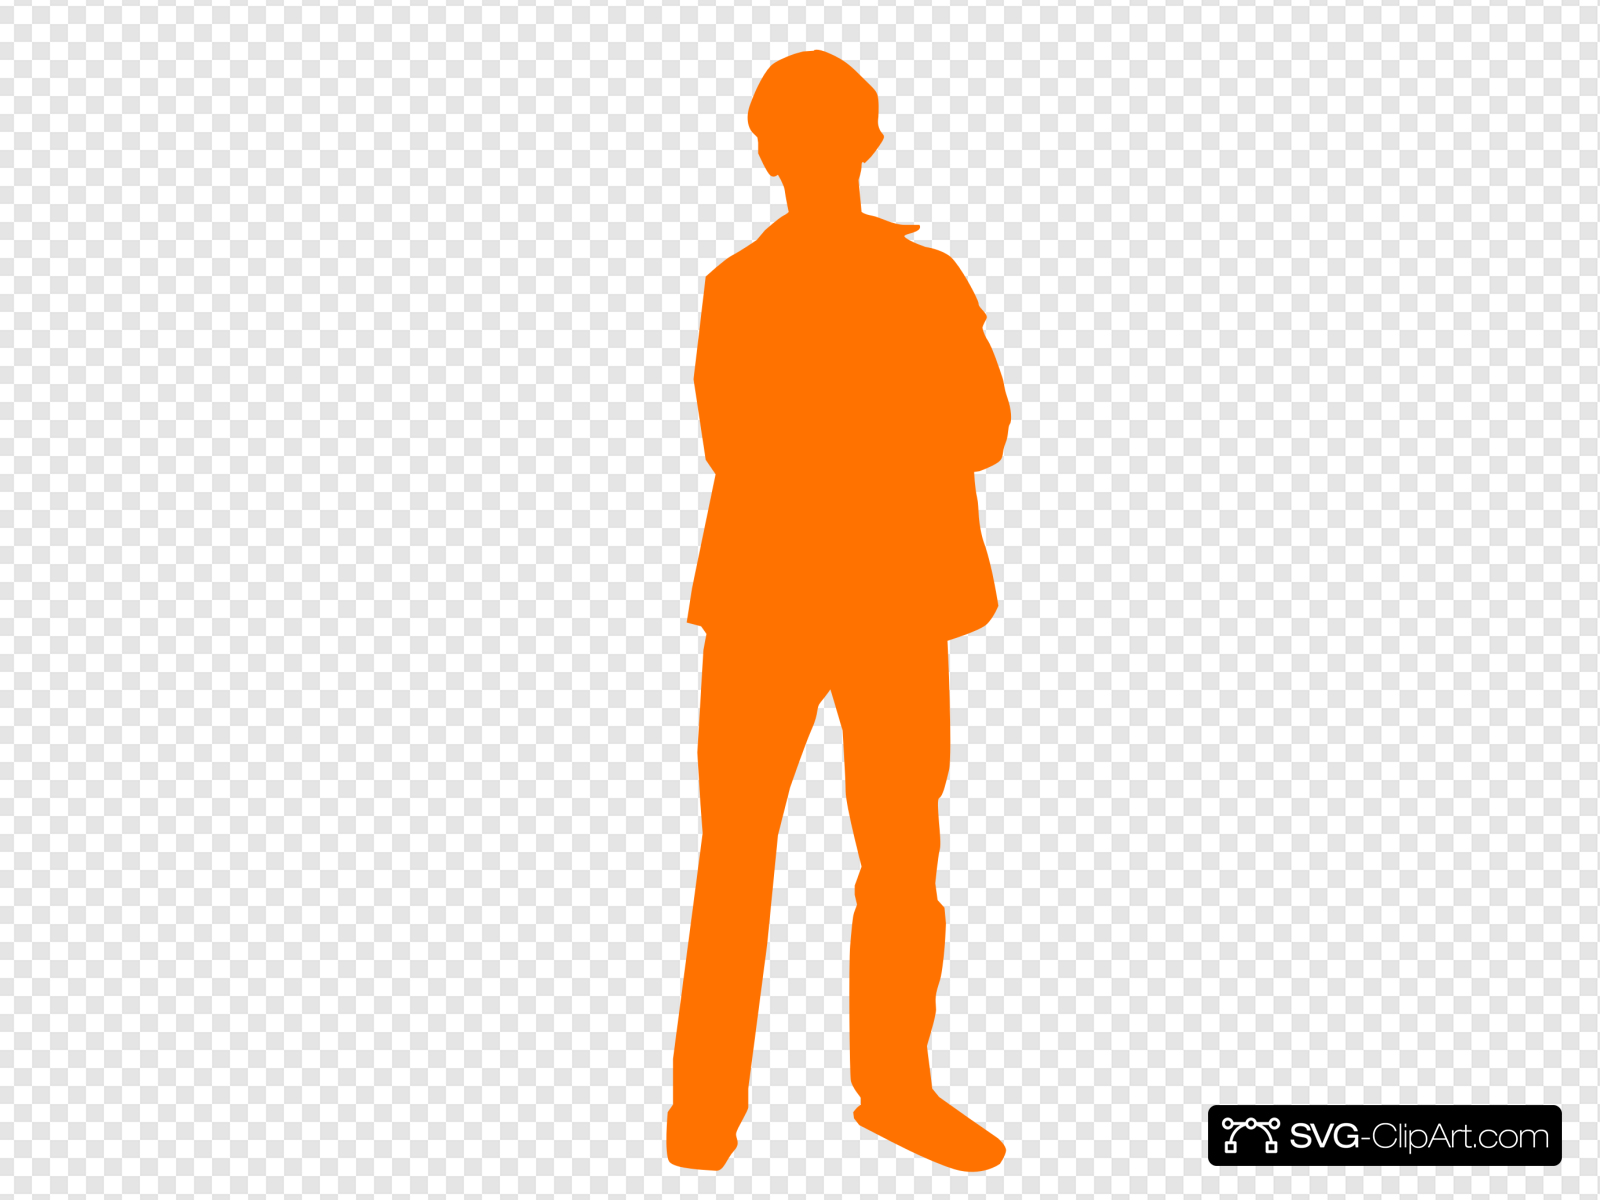 Solid Orange Man Person Clip art, Icon and SVG.